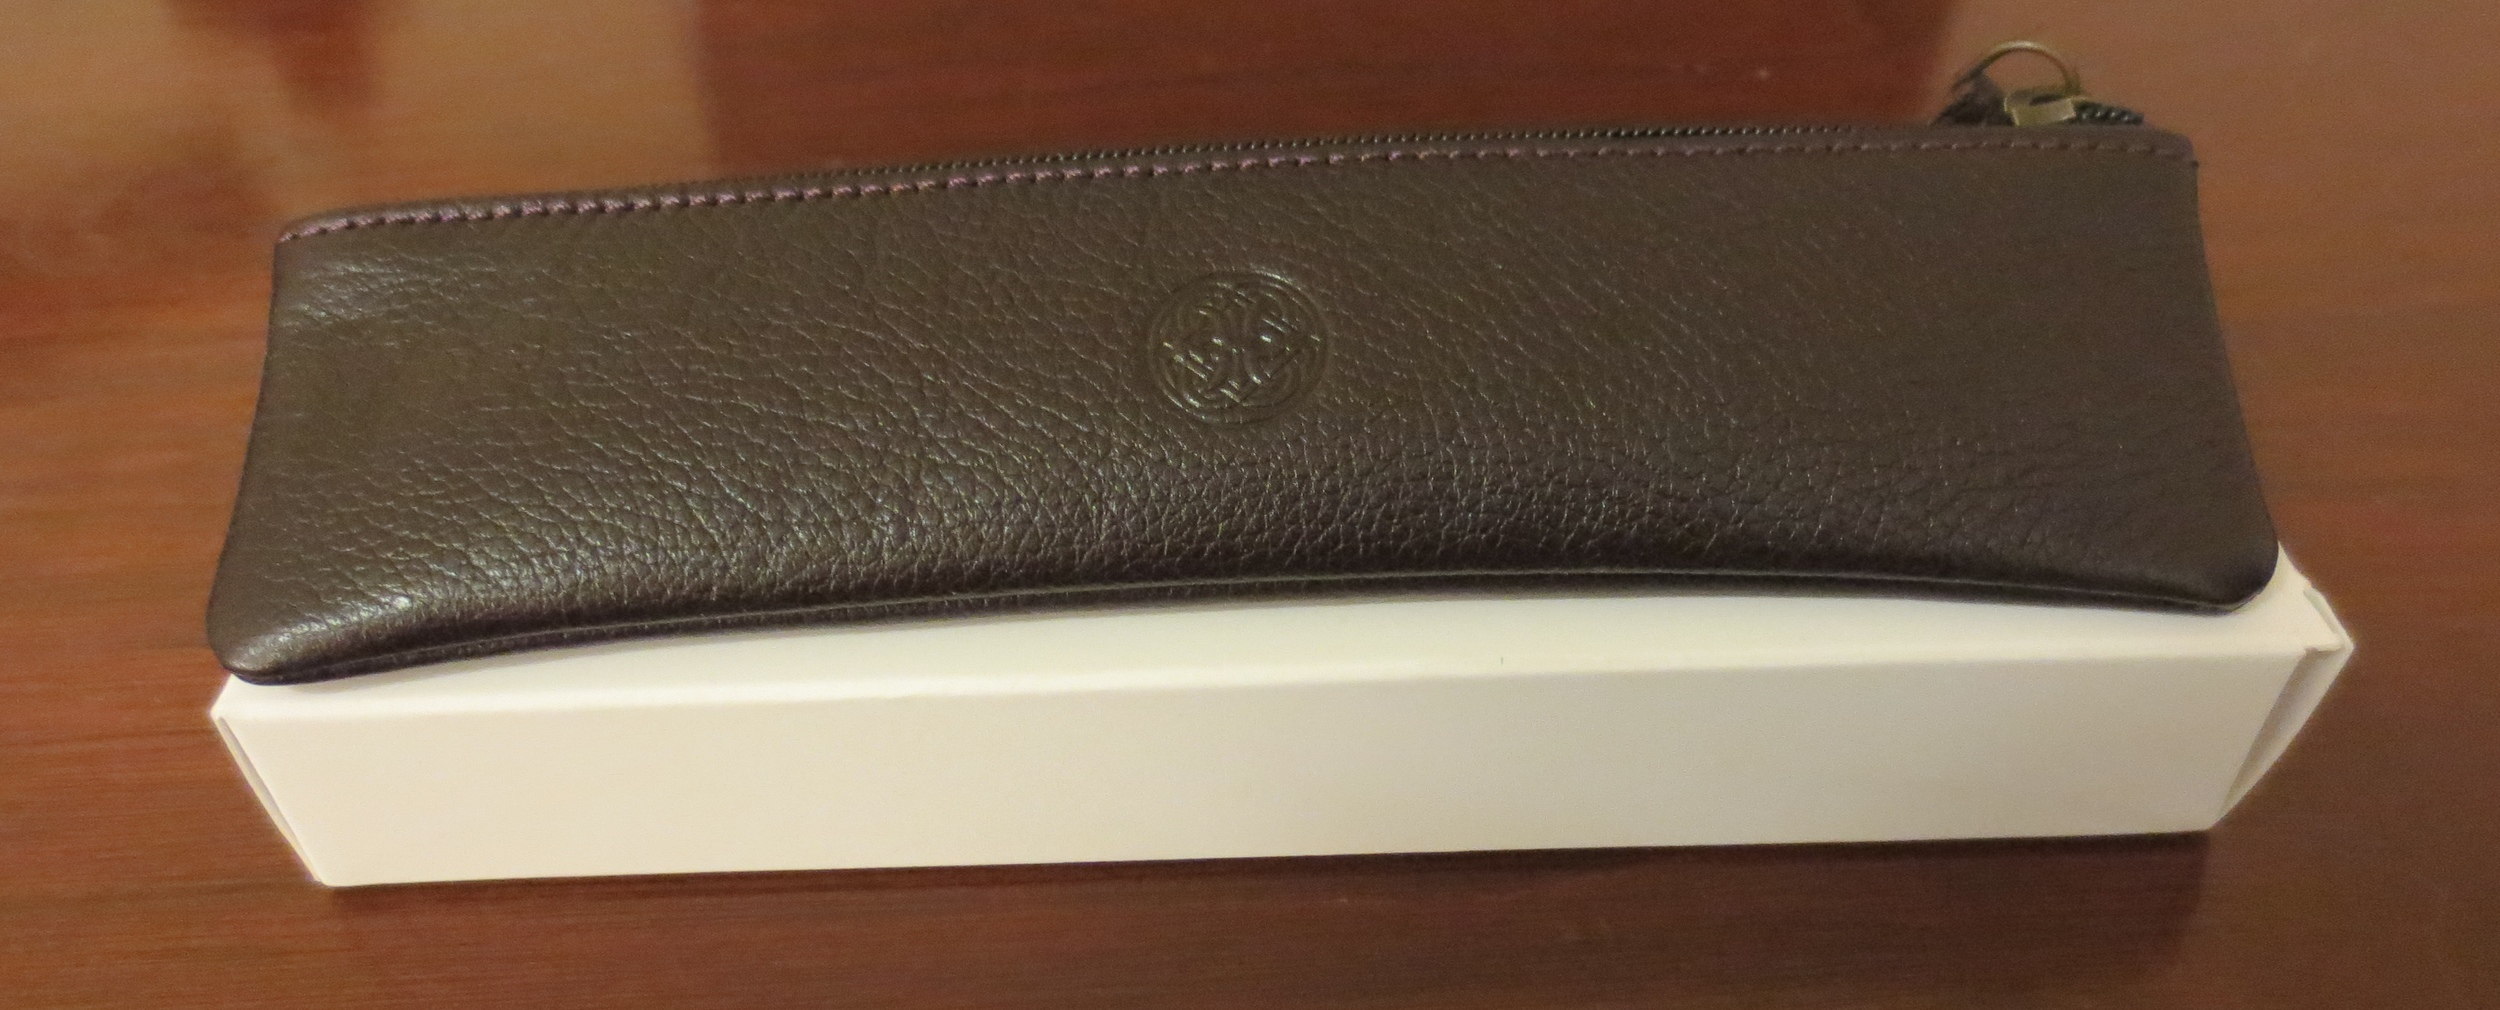 New Franklin-Christoph packaging.  I love the useful leather pen case/carryall.  (I now have two of them.)